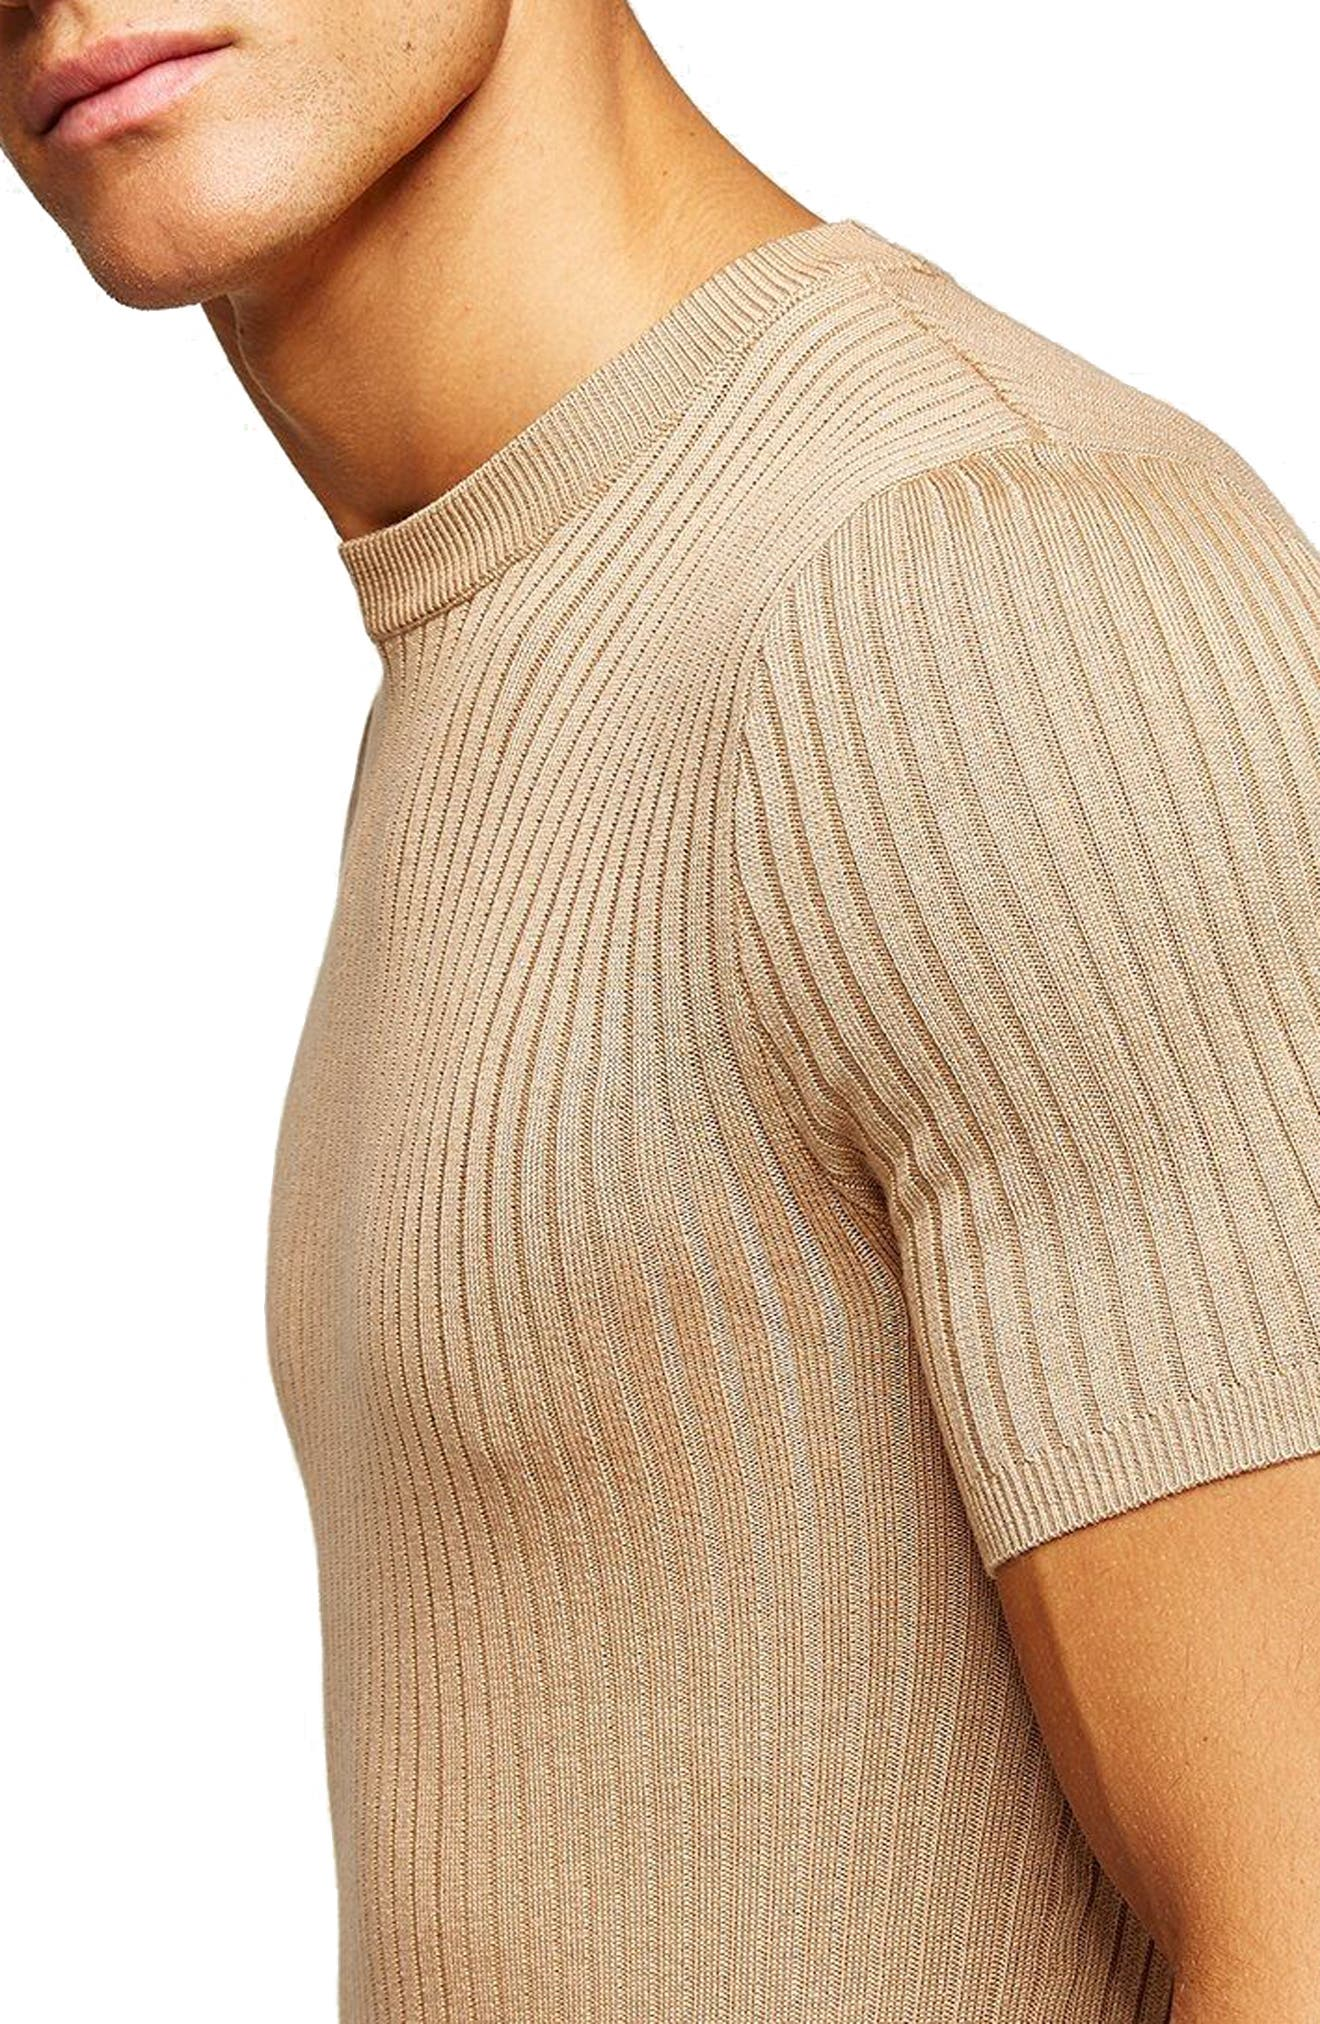 Short Sleeve Muscle Fit Shirt,                             Alternate thumbnail 3, color,                             Stone